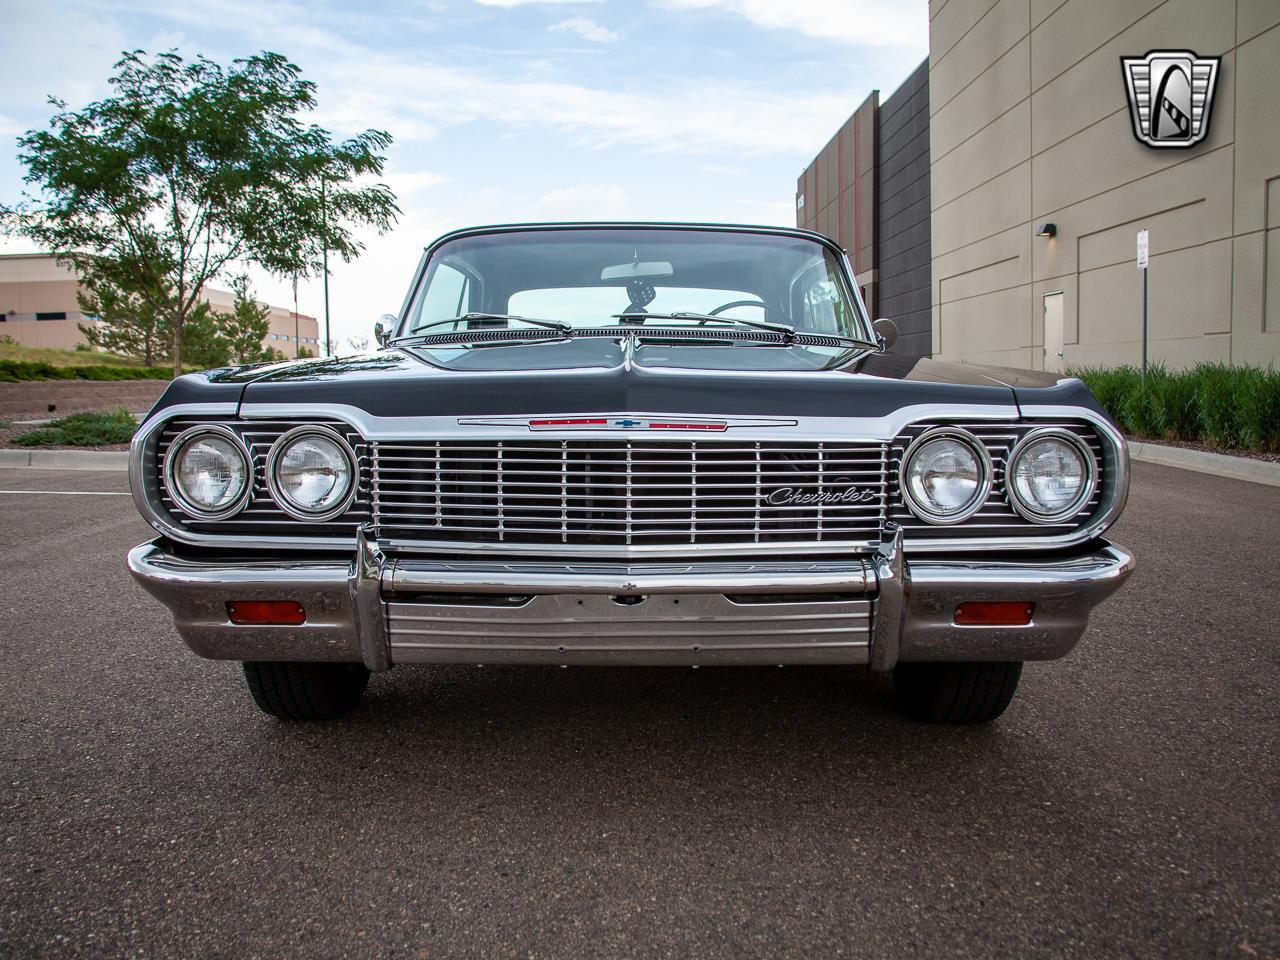 1964 Chevrolet Impala (CC-1364692) for sale in O'Fallon, Illinois